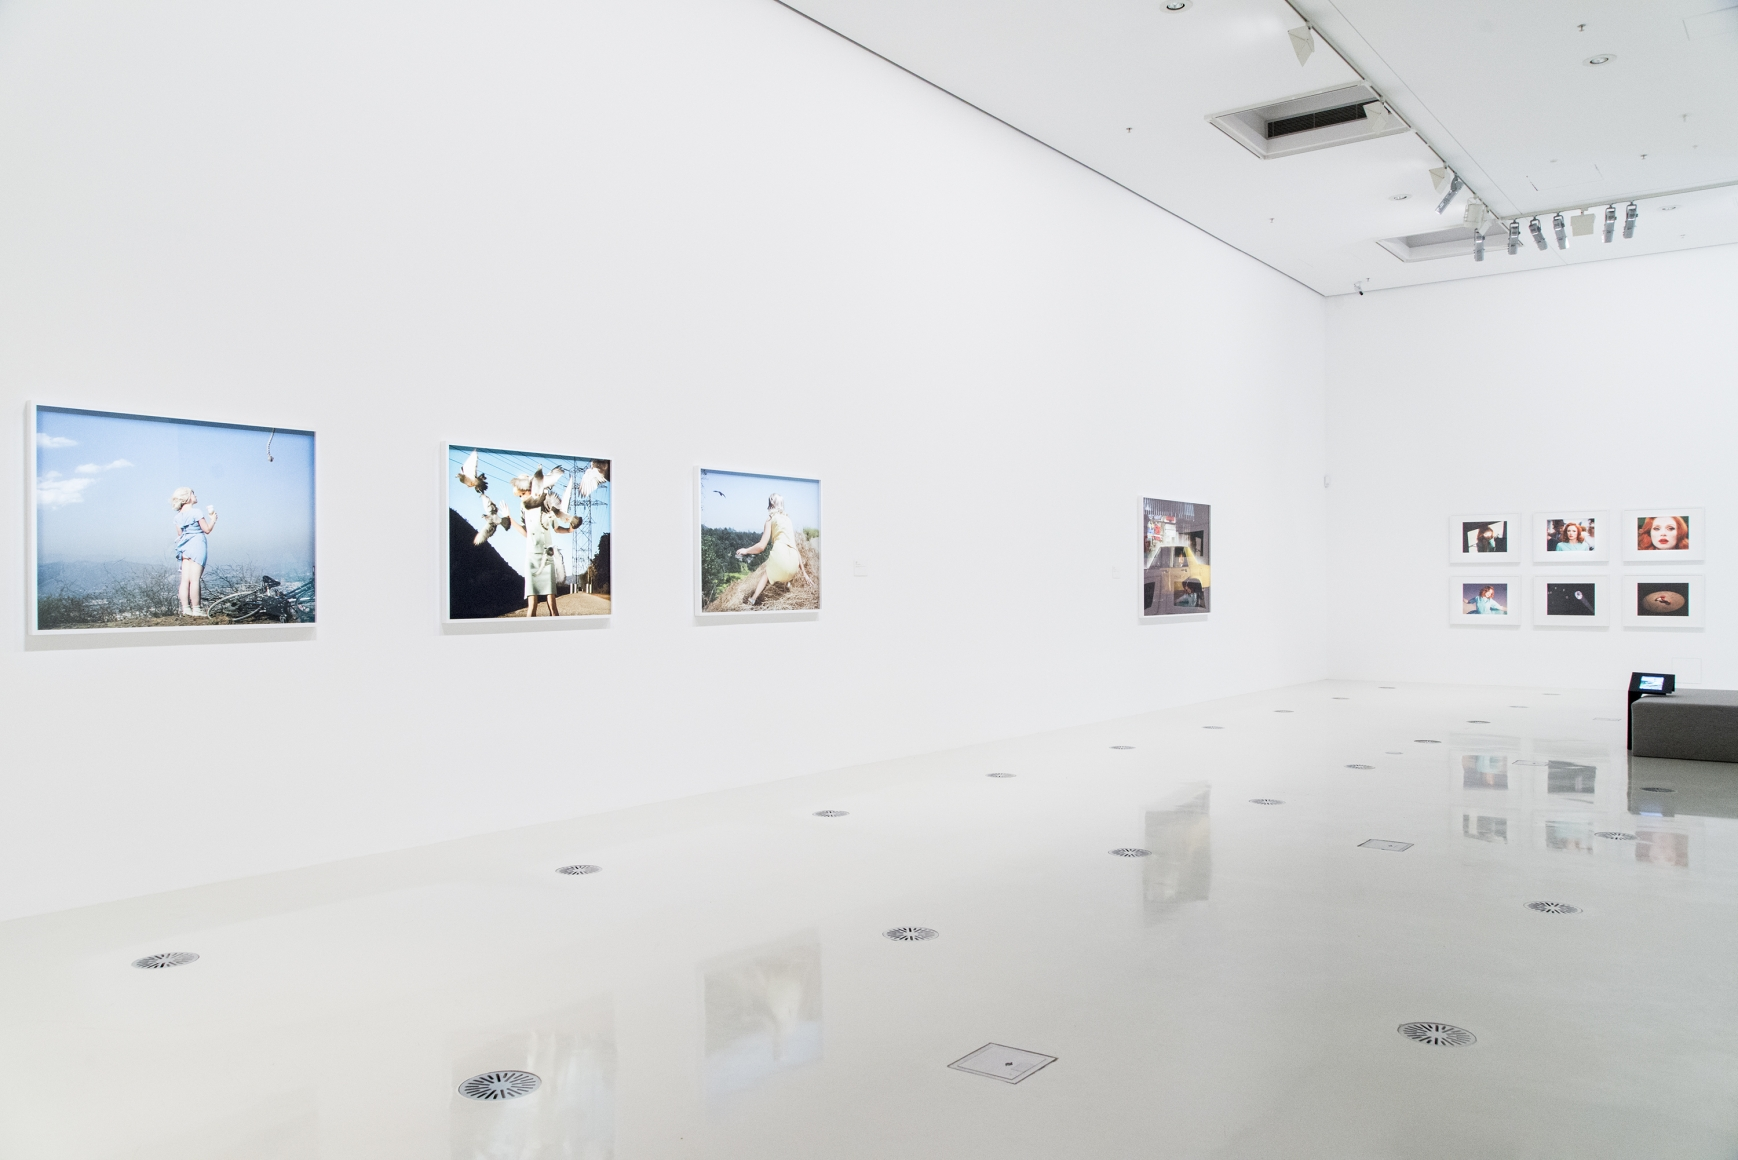 亞莉克絲·æ™®æ‹‰æ ¼çˆ¾ Installation view